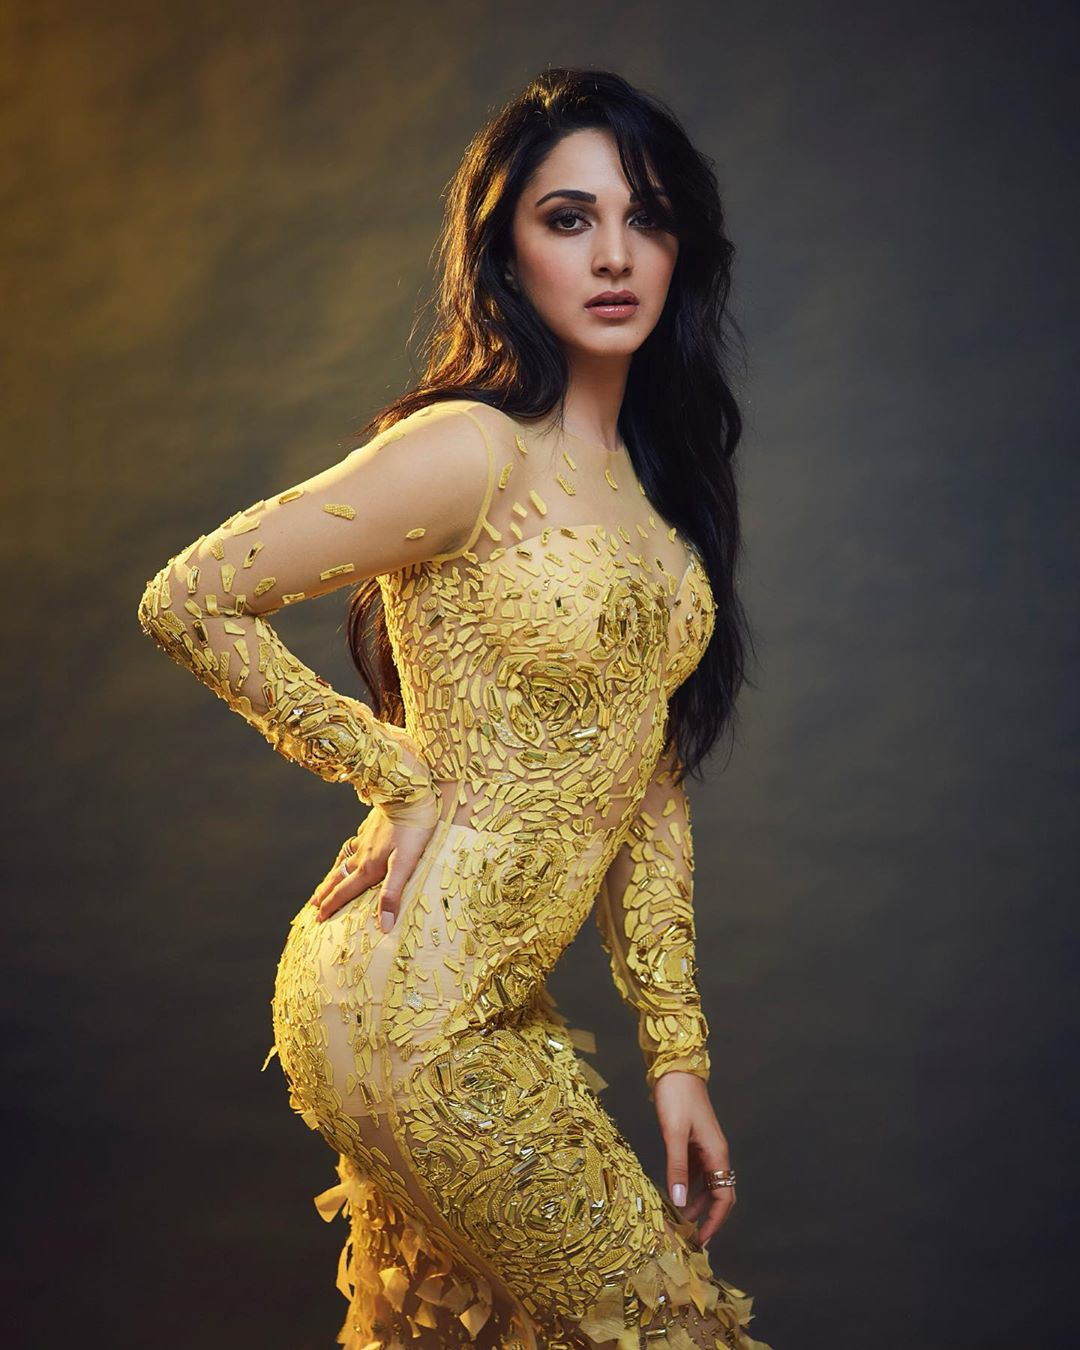 Kiara Advani latest hot images and film News